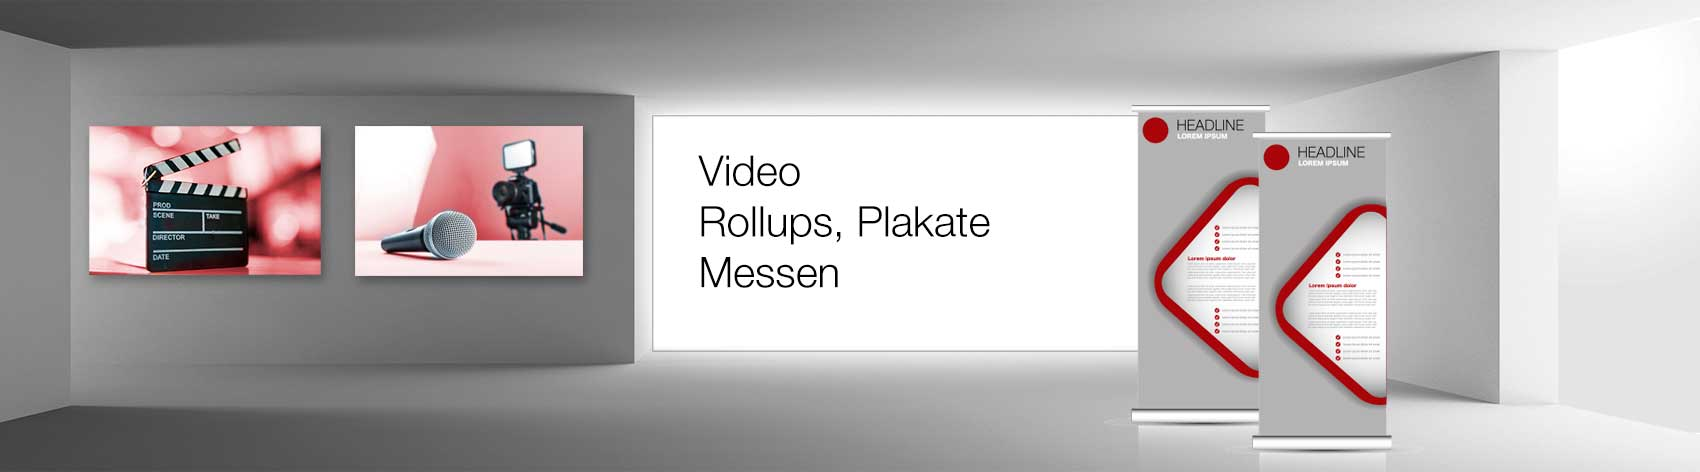 Video, Messe, RollUps